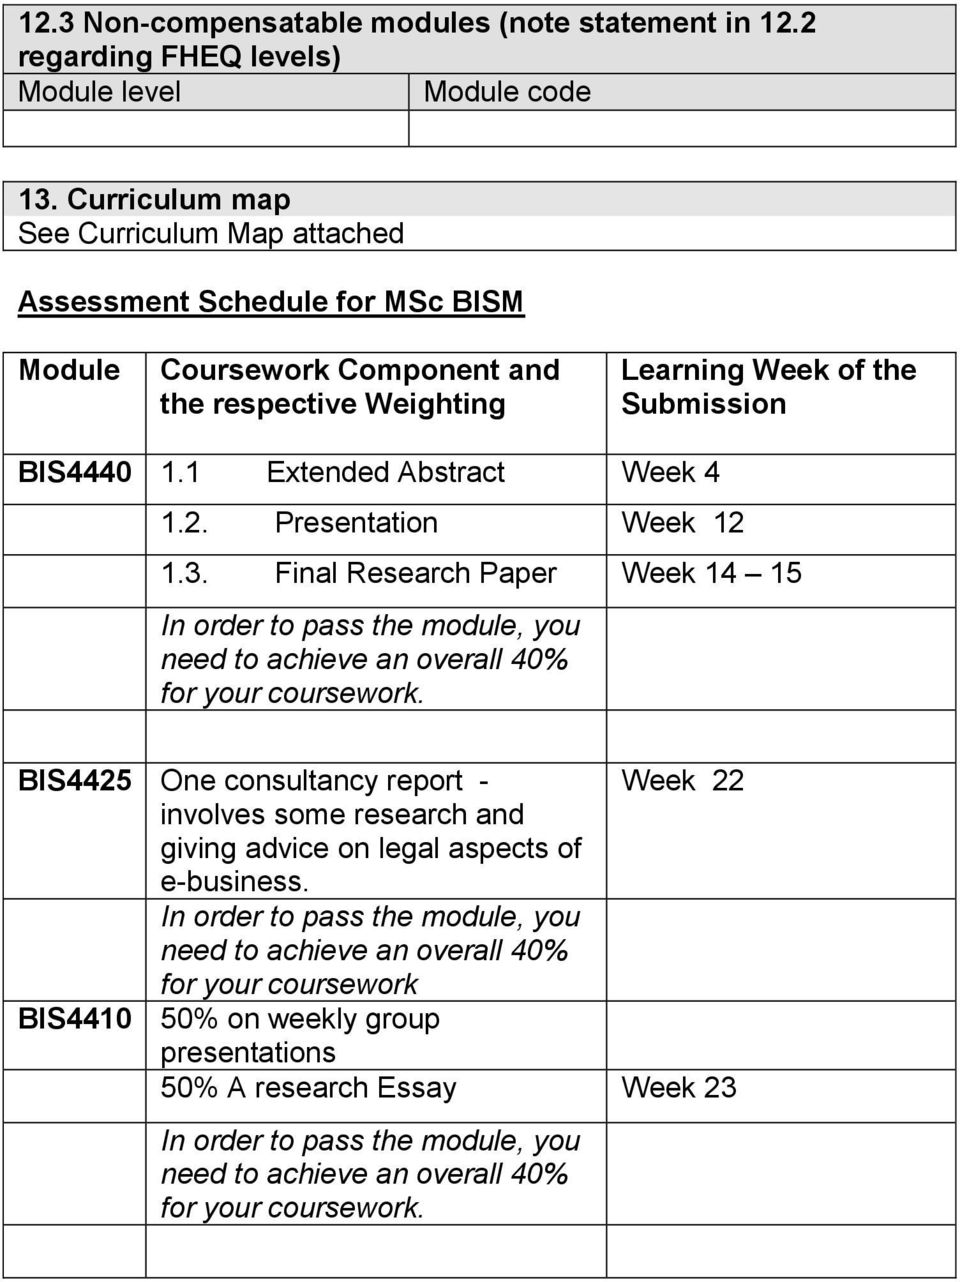 1 Extended Abstract Week 4 1.2. Presentation Week 12 1.3. Final Research Paper Week 14 15 In order to pass the module, you need to achieve an overall 40% for your coursework.